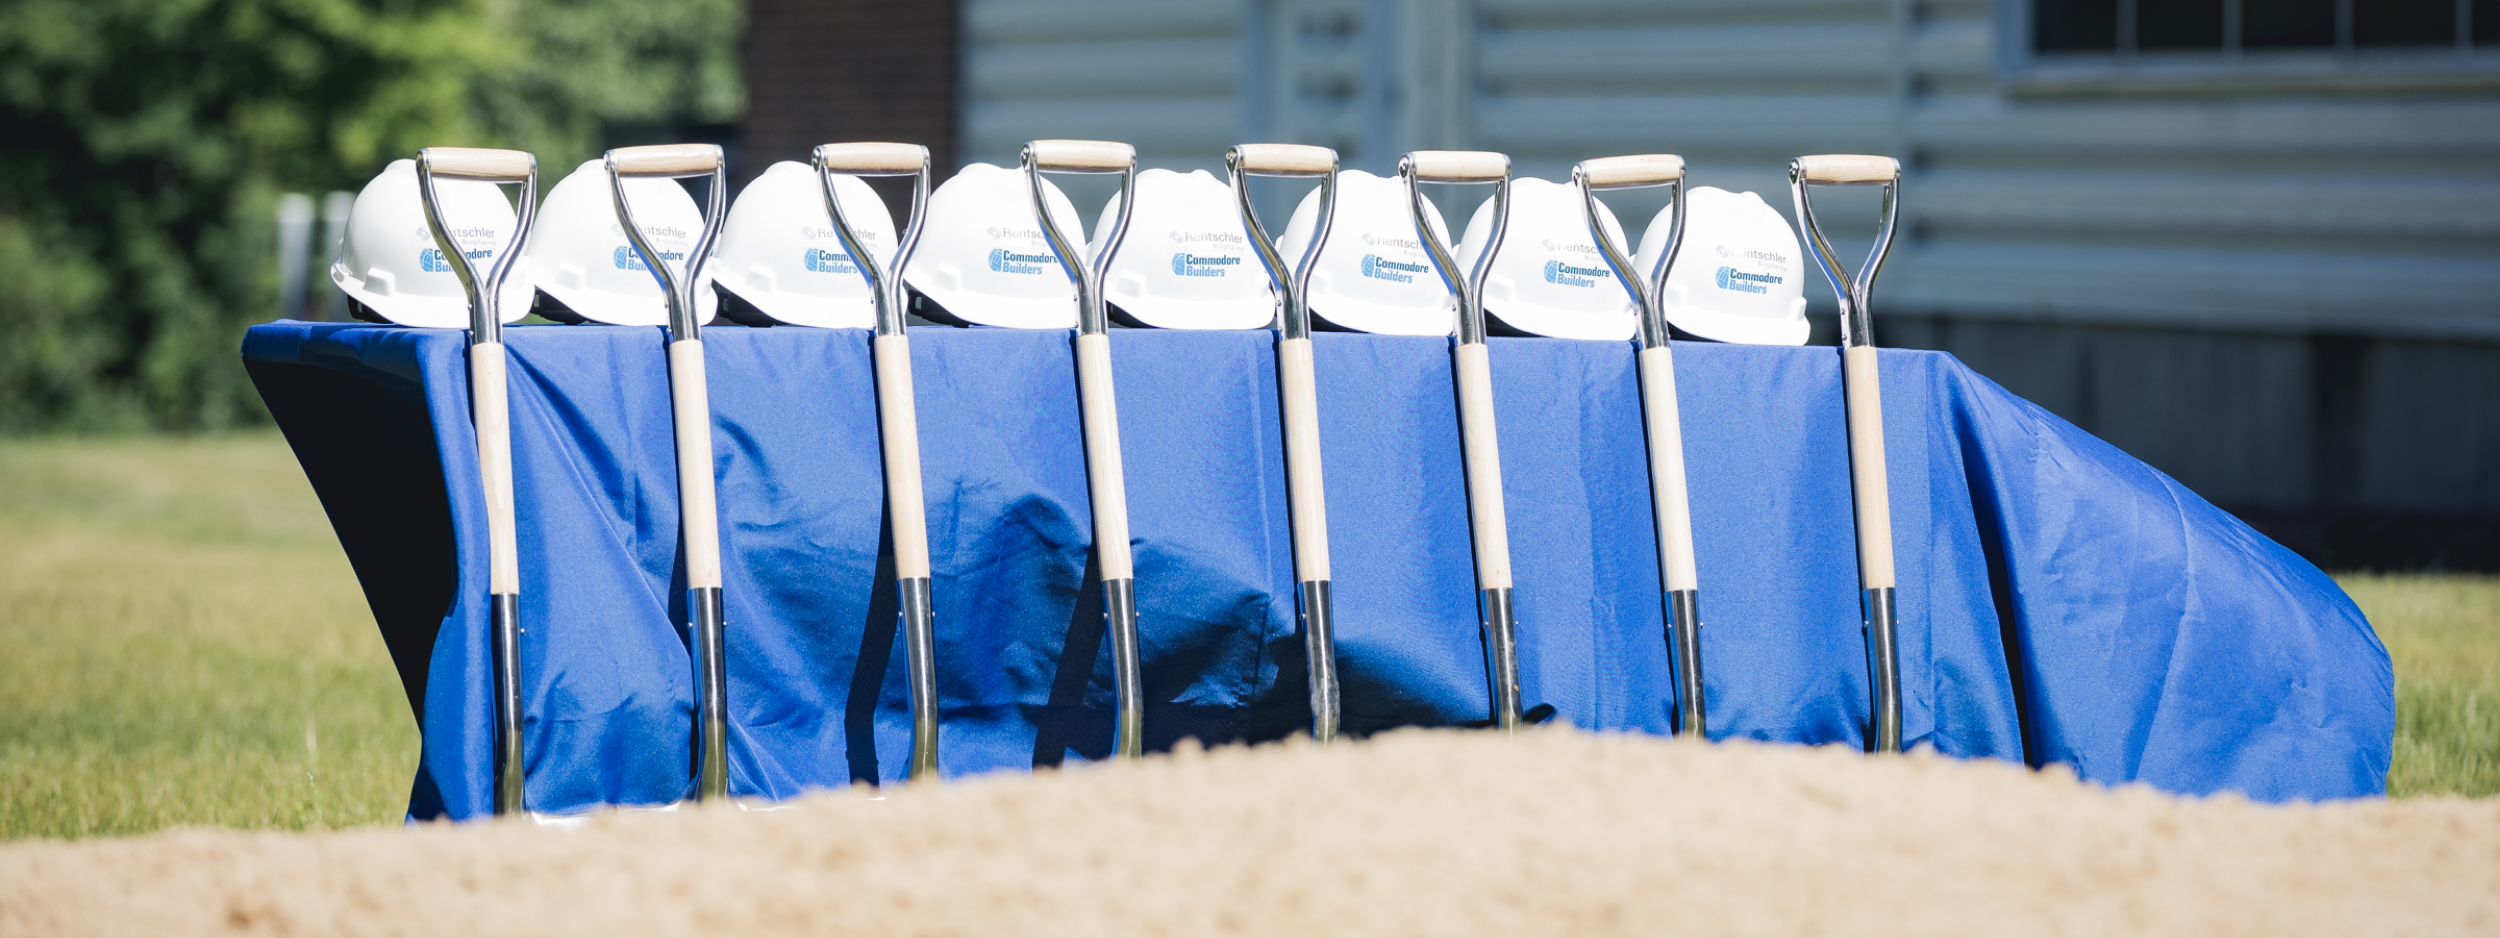 Rentschler Biopharma breaks ground at new U.S. production site in greater Boston